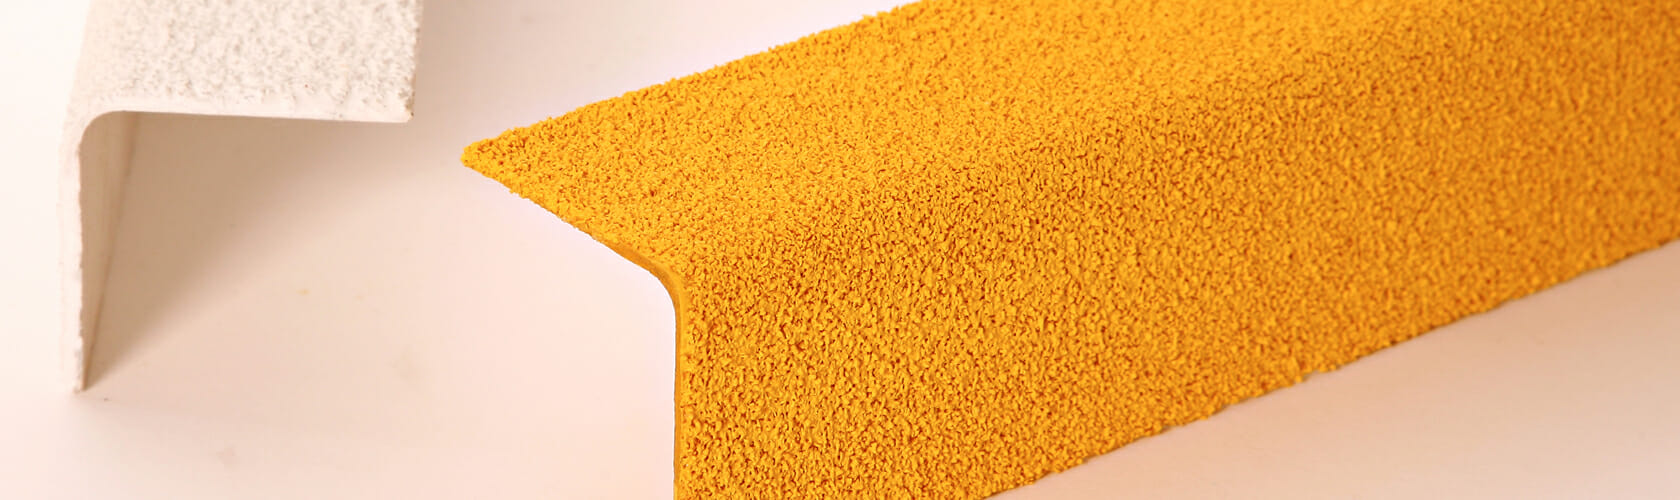 Image of Carborundum Stair Nosings available through GripAction.com.au